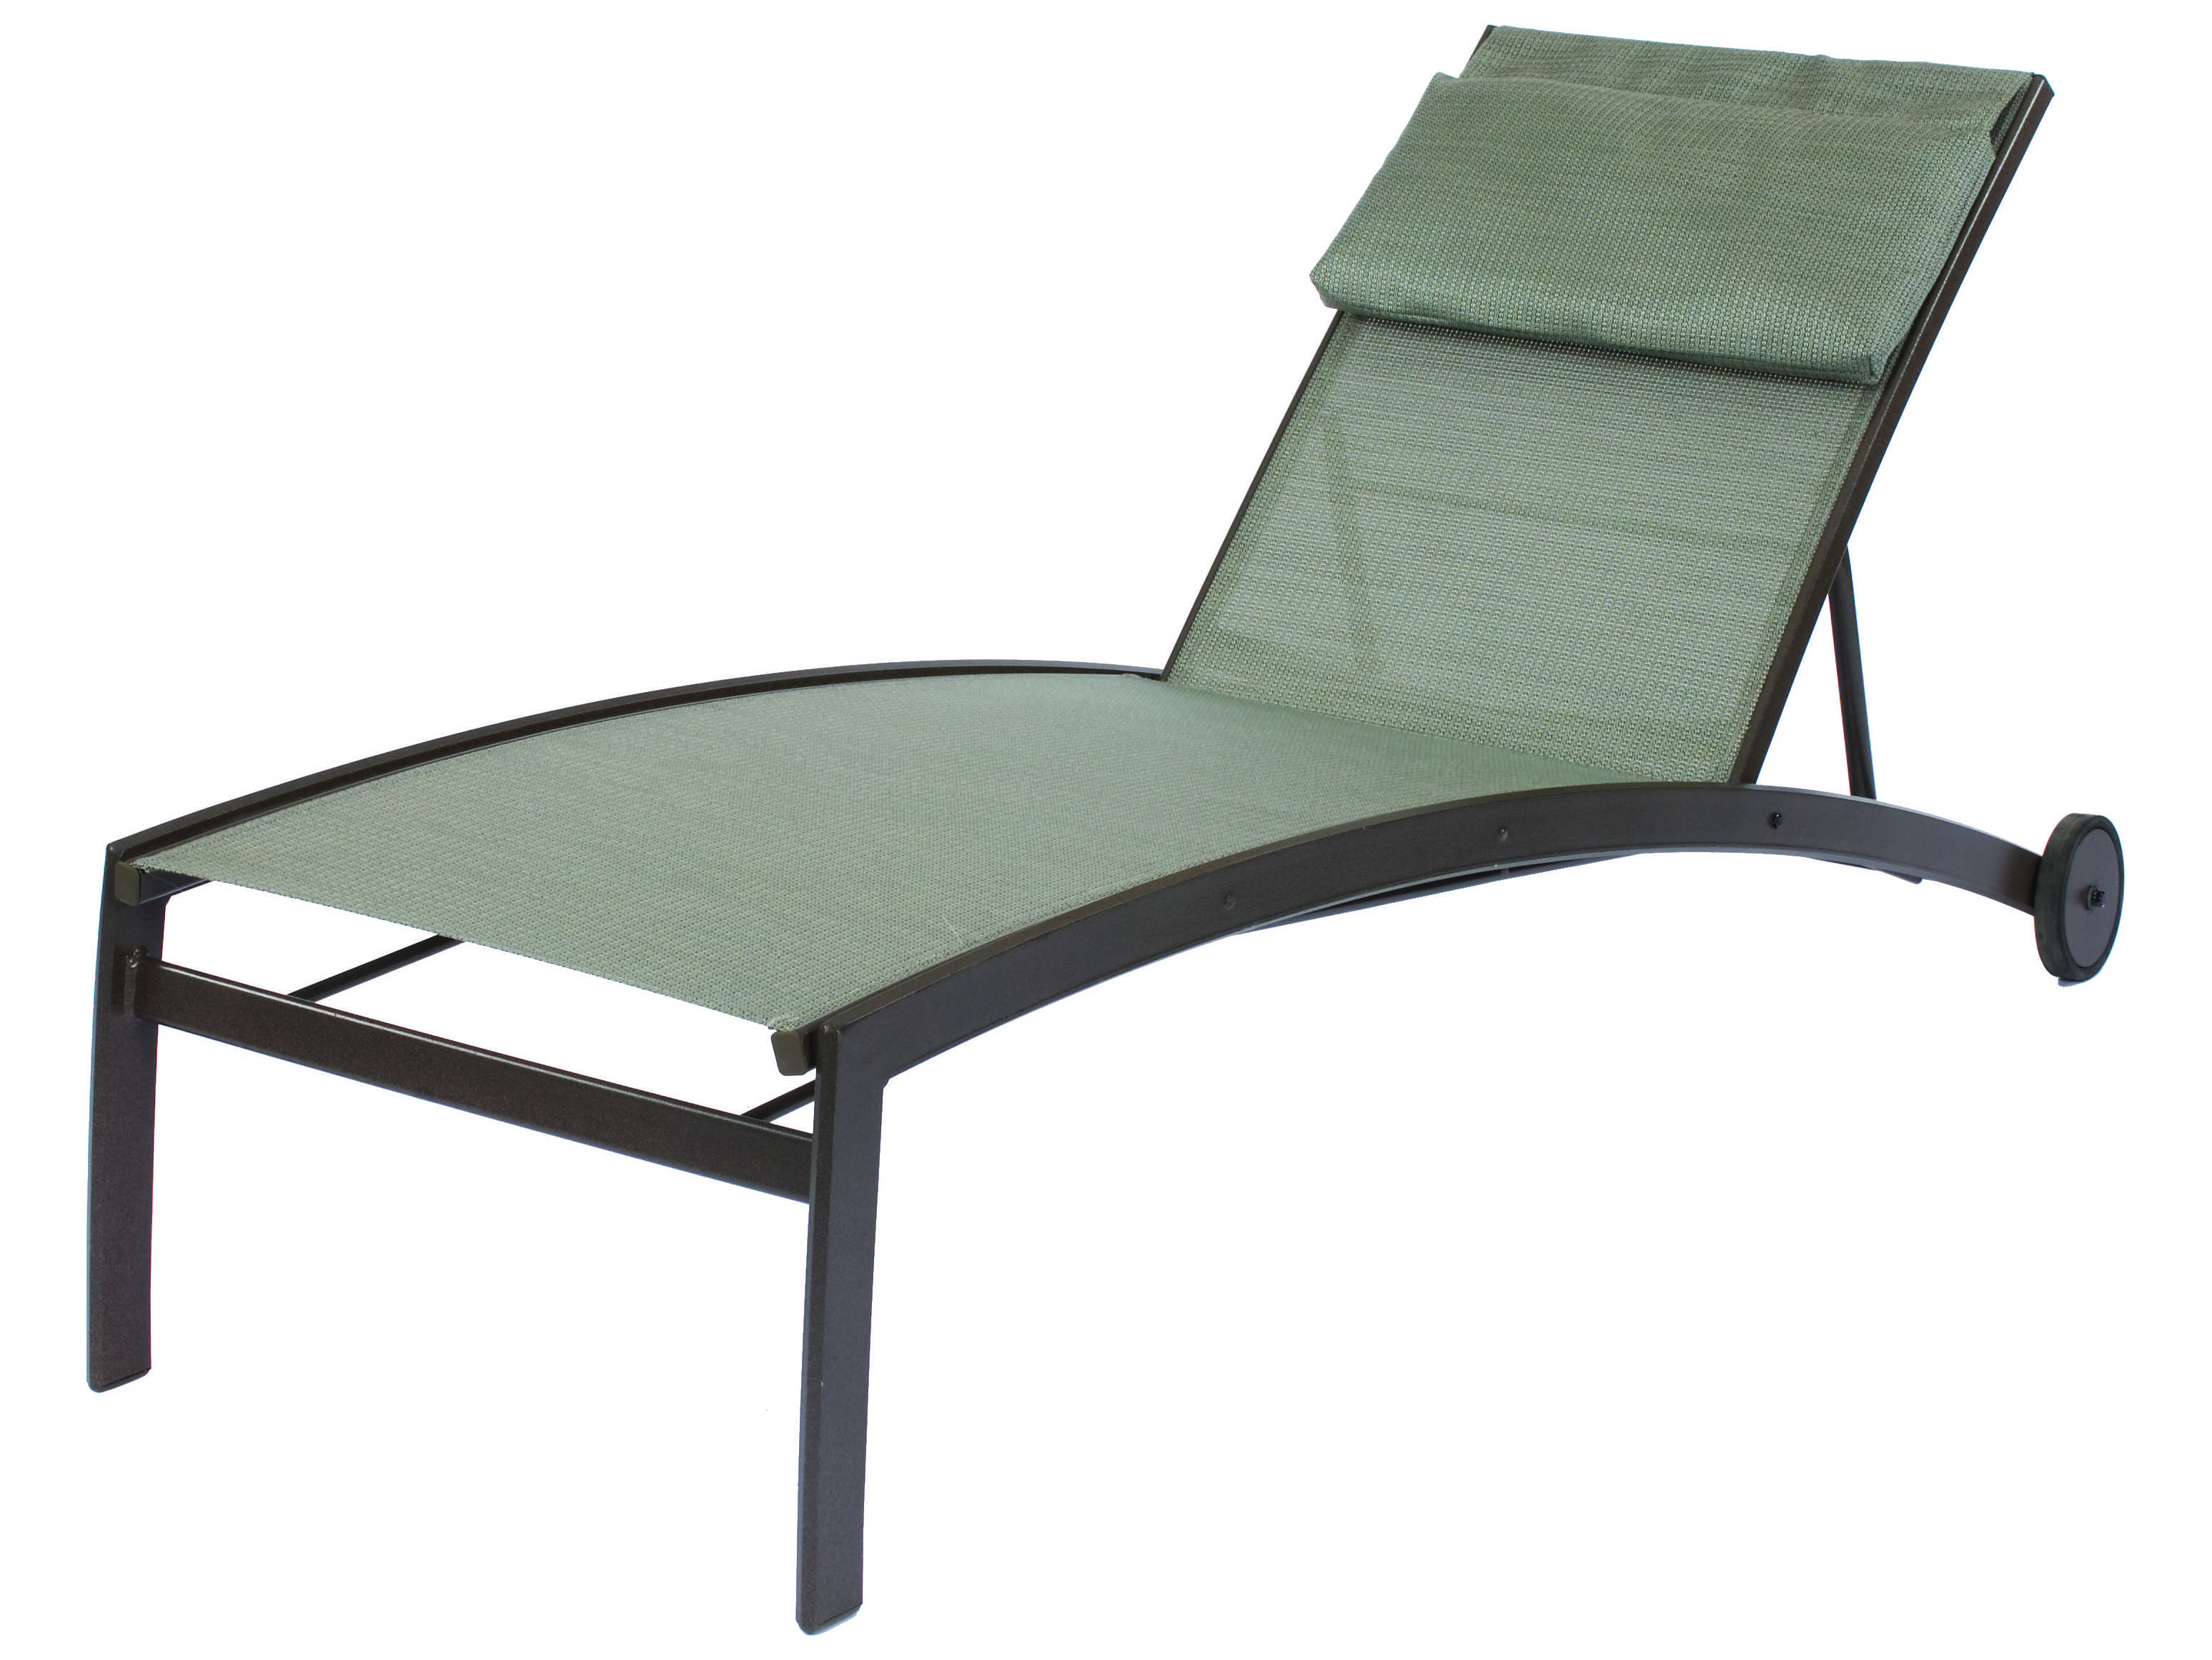 Suncoast vision sling cast aluminum chaise 7913 for Cast aluminum chaise